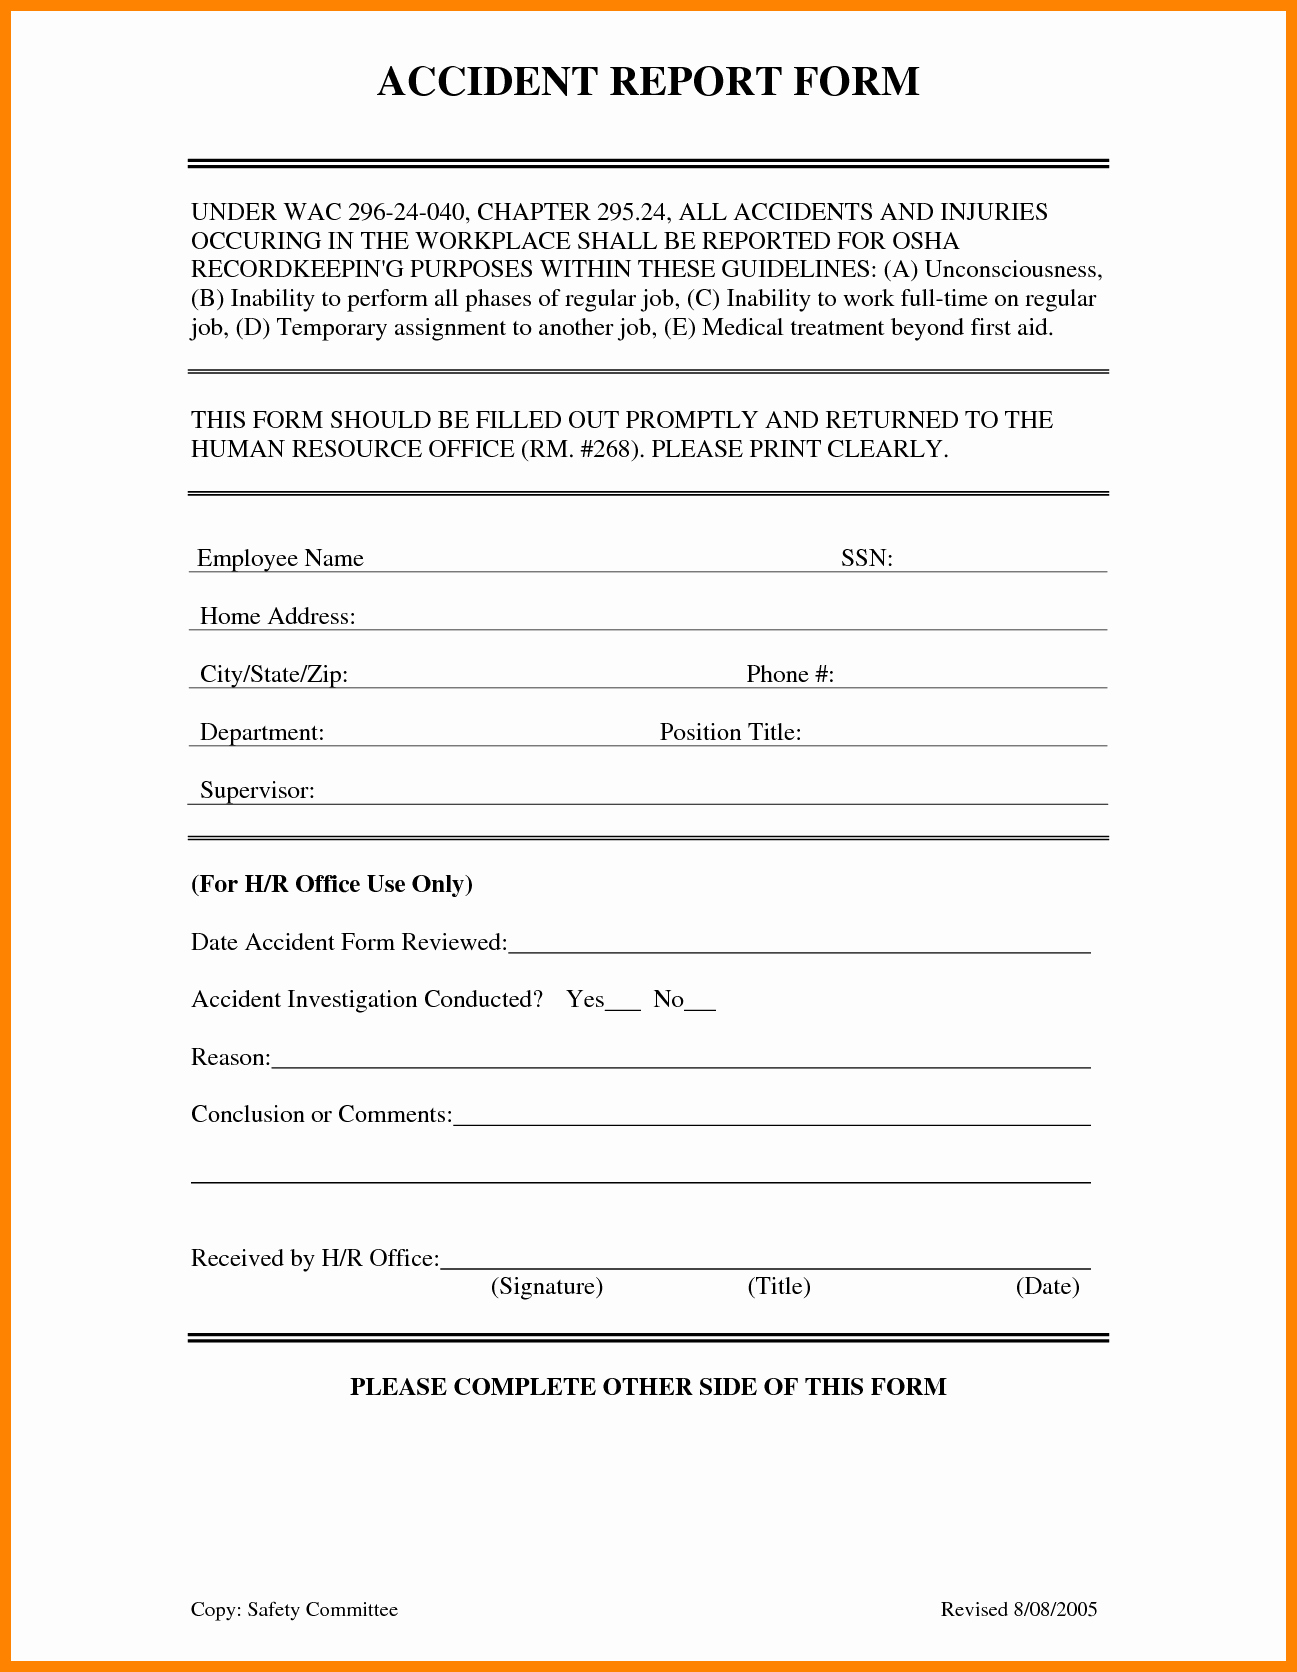 Automobile Accident Report form Template Best Of form Template Car Accident Report form Car Accident